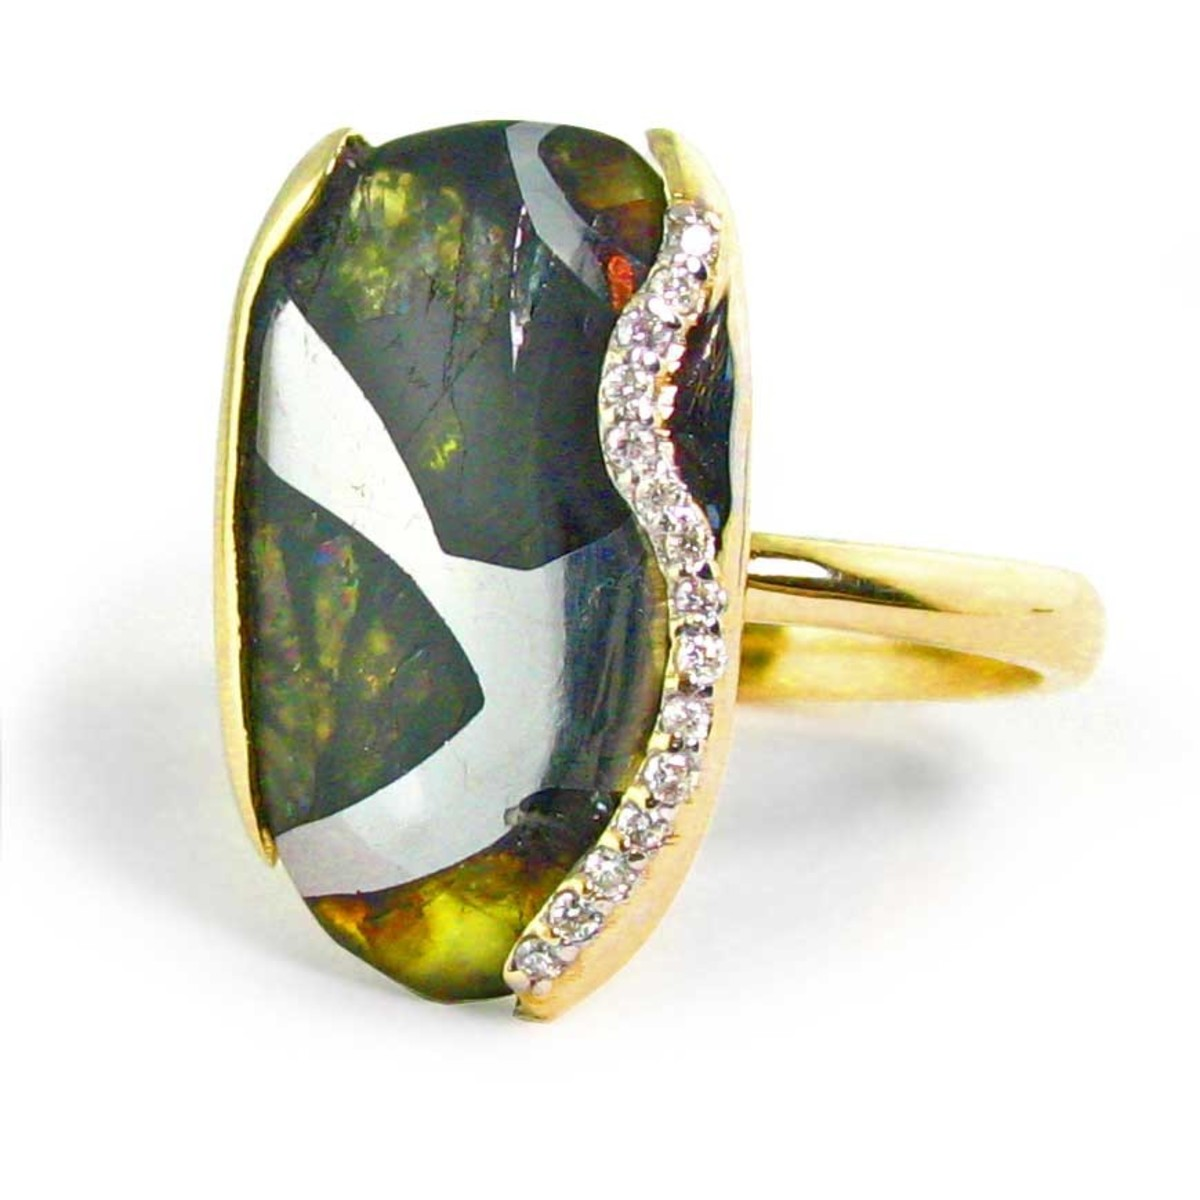 A pallasite ring